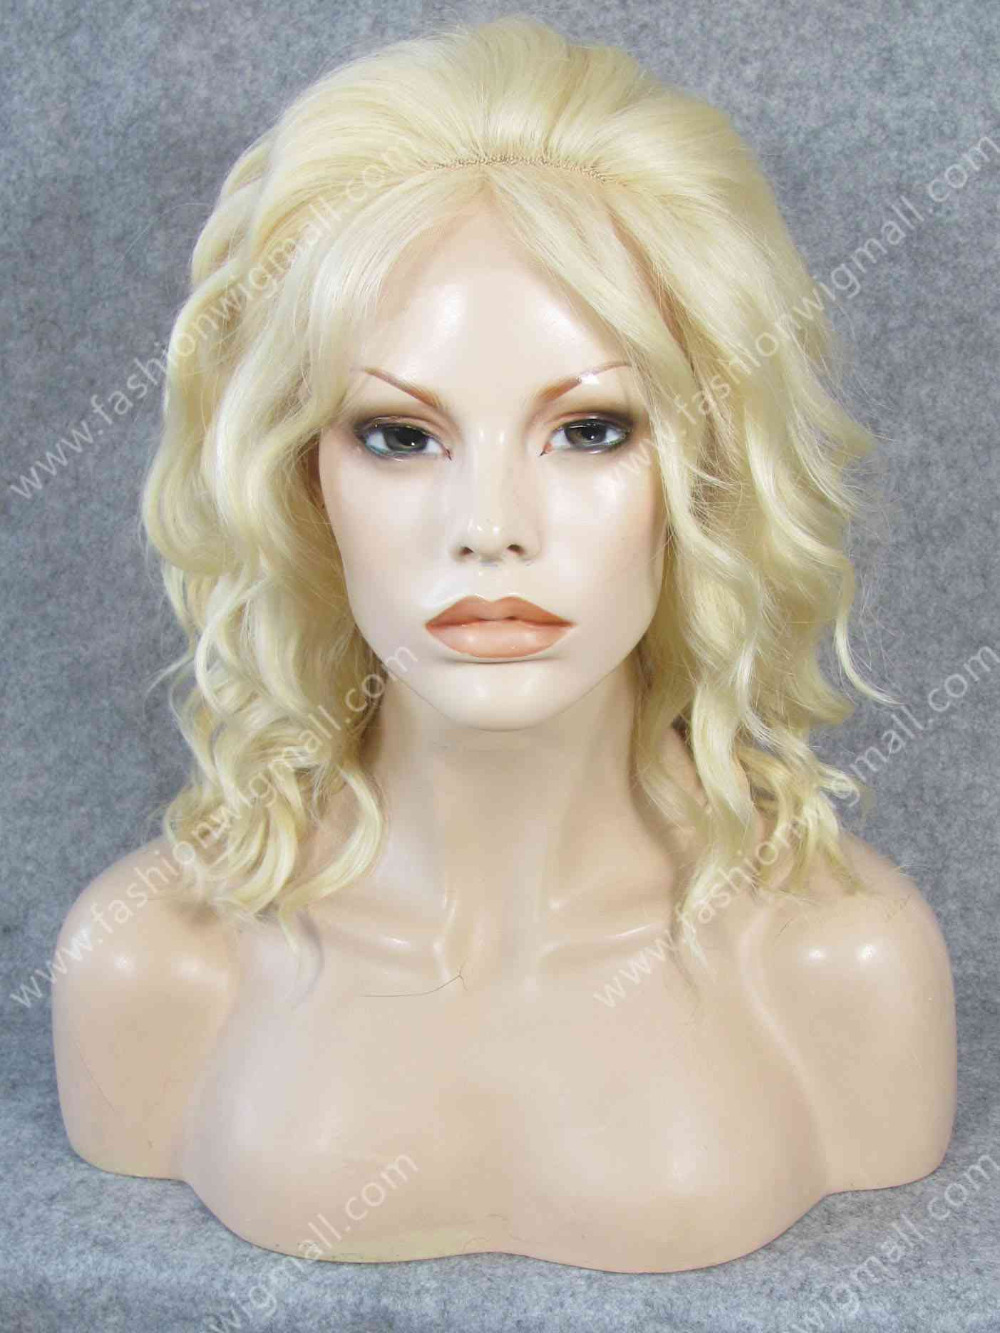 #613 Fashion Heavy Density Lace Front Heat Safe Fiber Blonde Chic Short Fashion Lady Wig W17